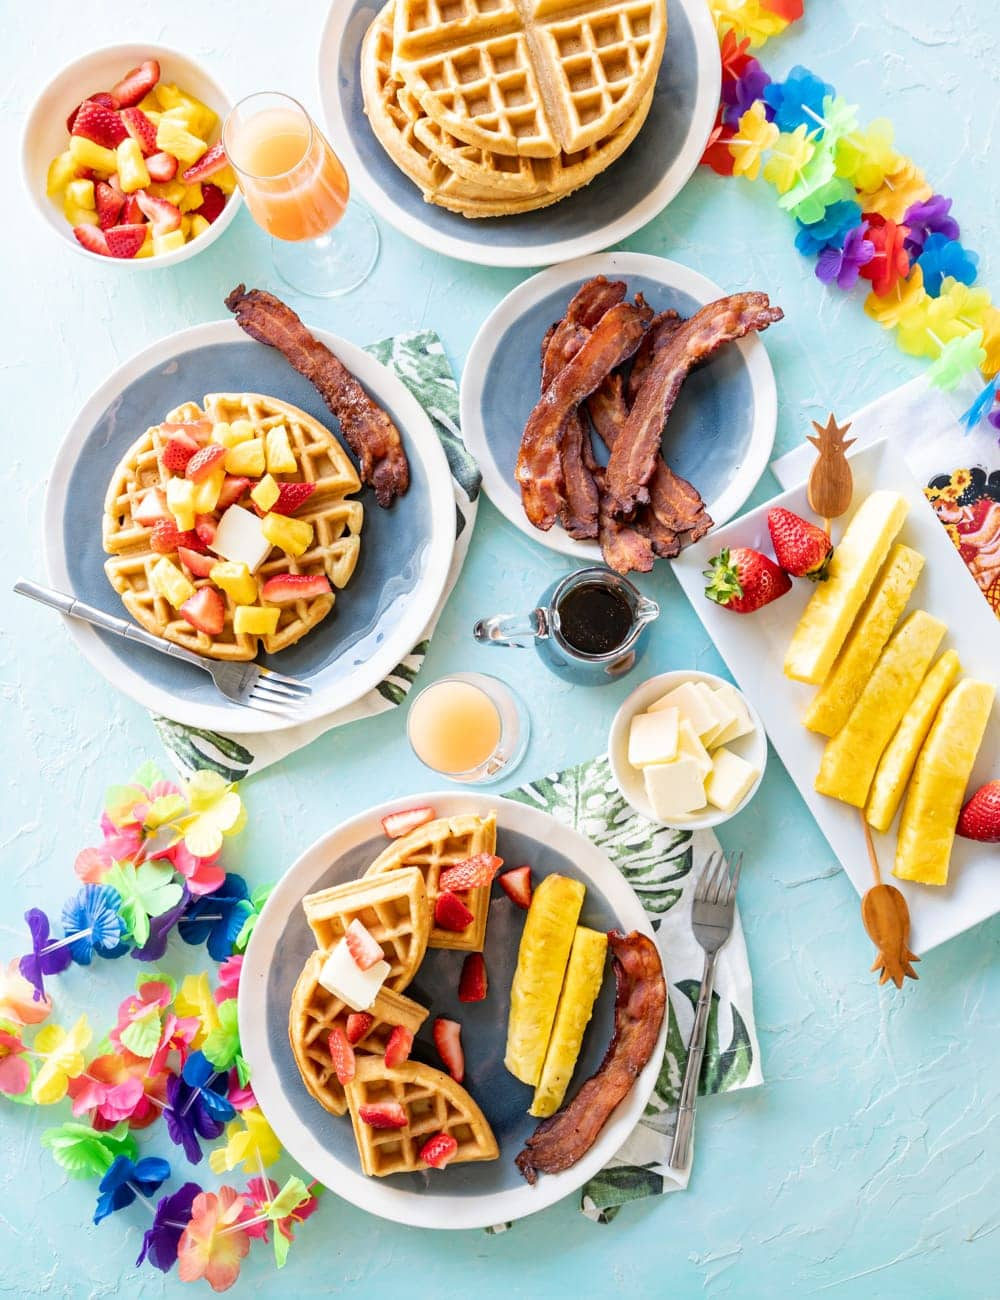 coconut mochi waffles on blue plates with pineapple spears, pieces of cooked bacon, glass with mimosa cocktail in it, glass syrup bottle, rainbow Hawaiian lei on table